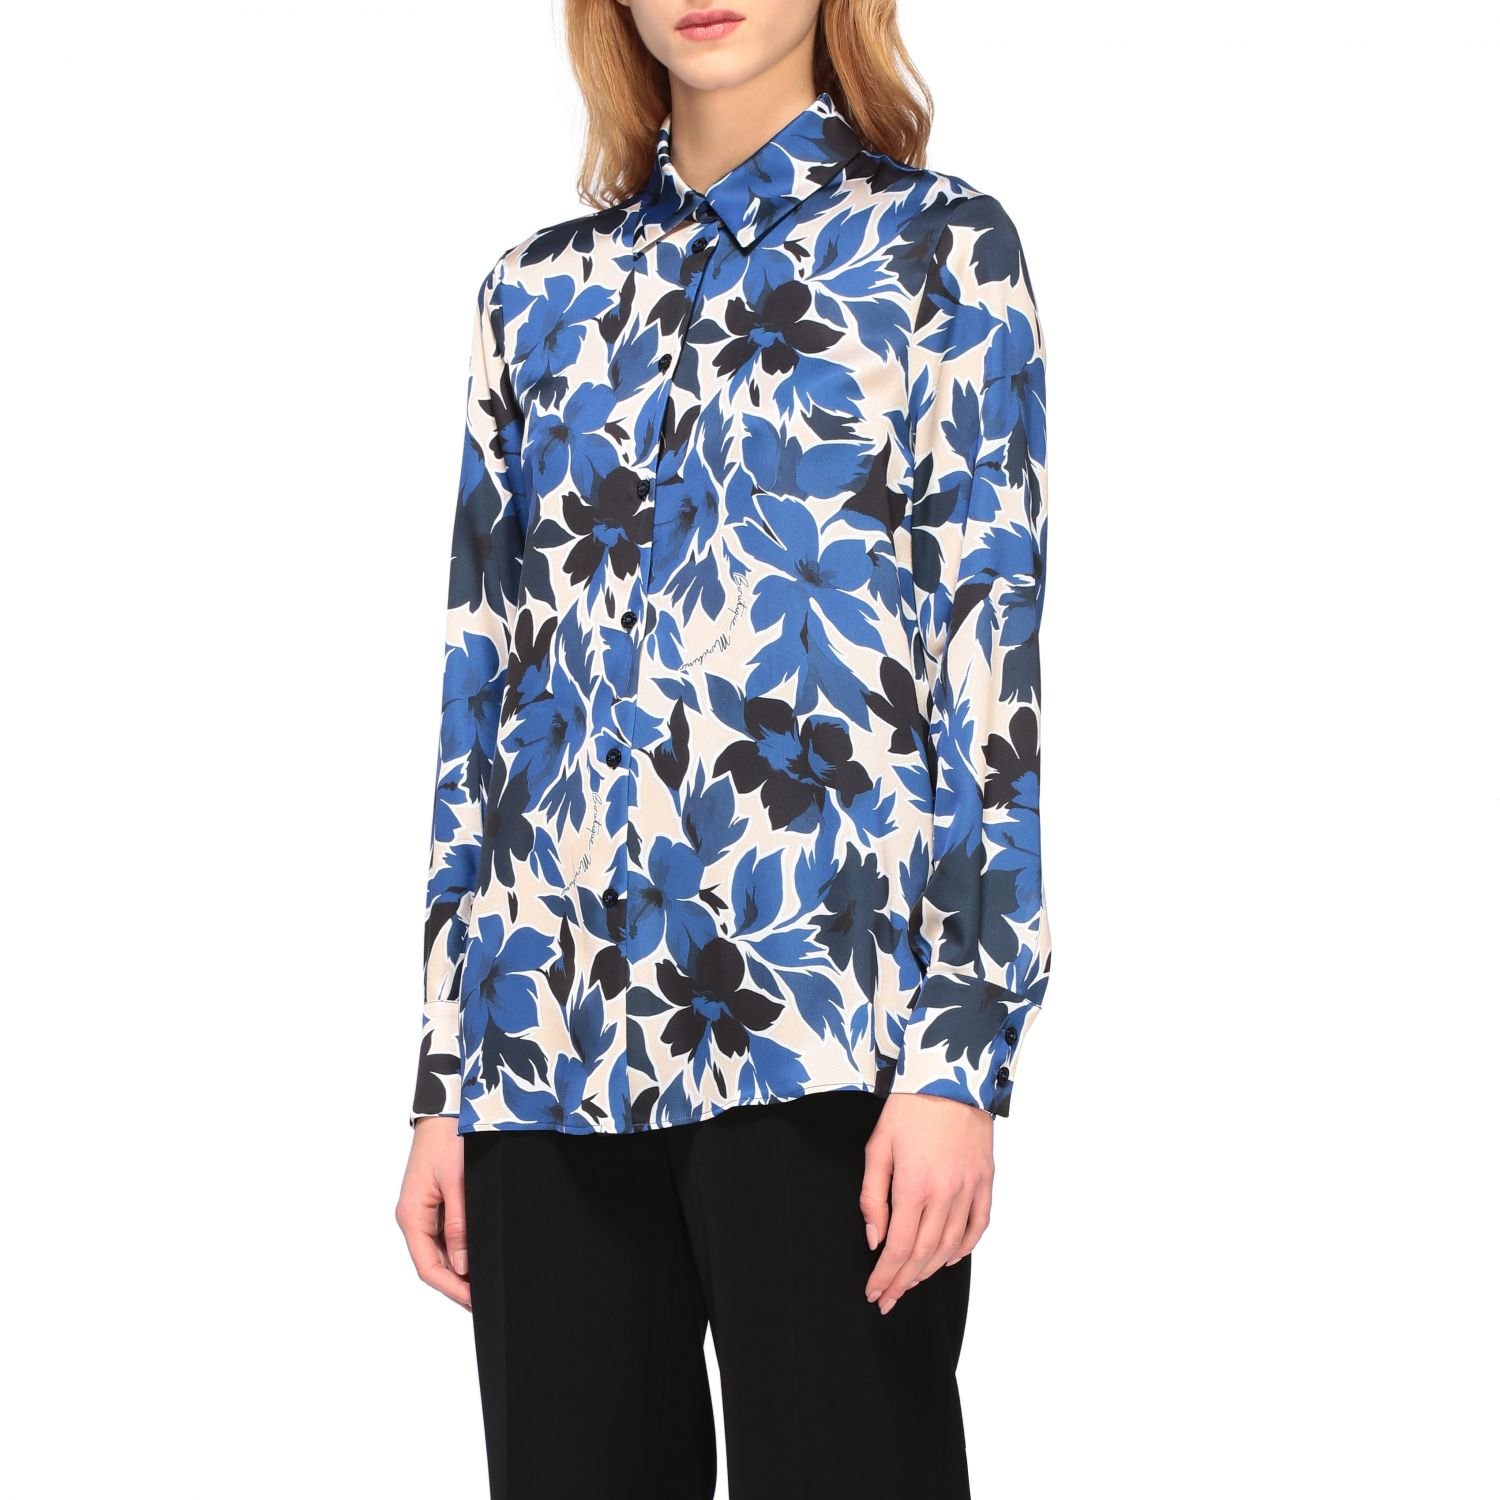 Shirt Boutique Moschino: Shirt women Boutique Moschino blue 4